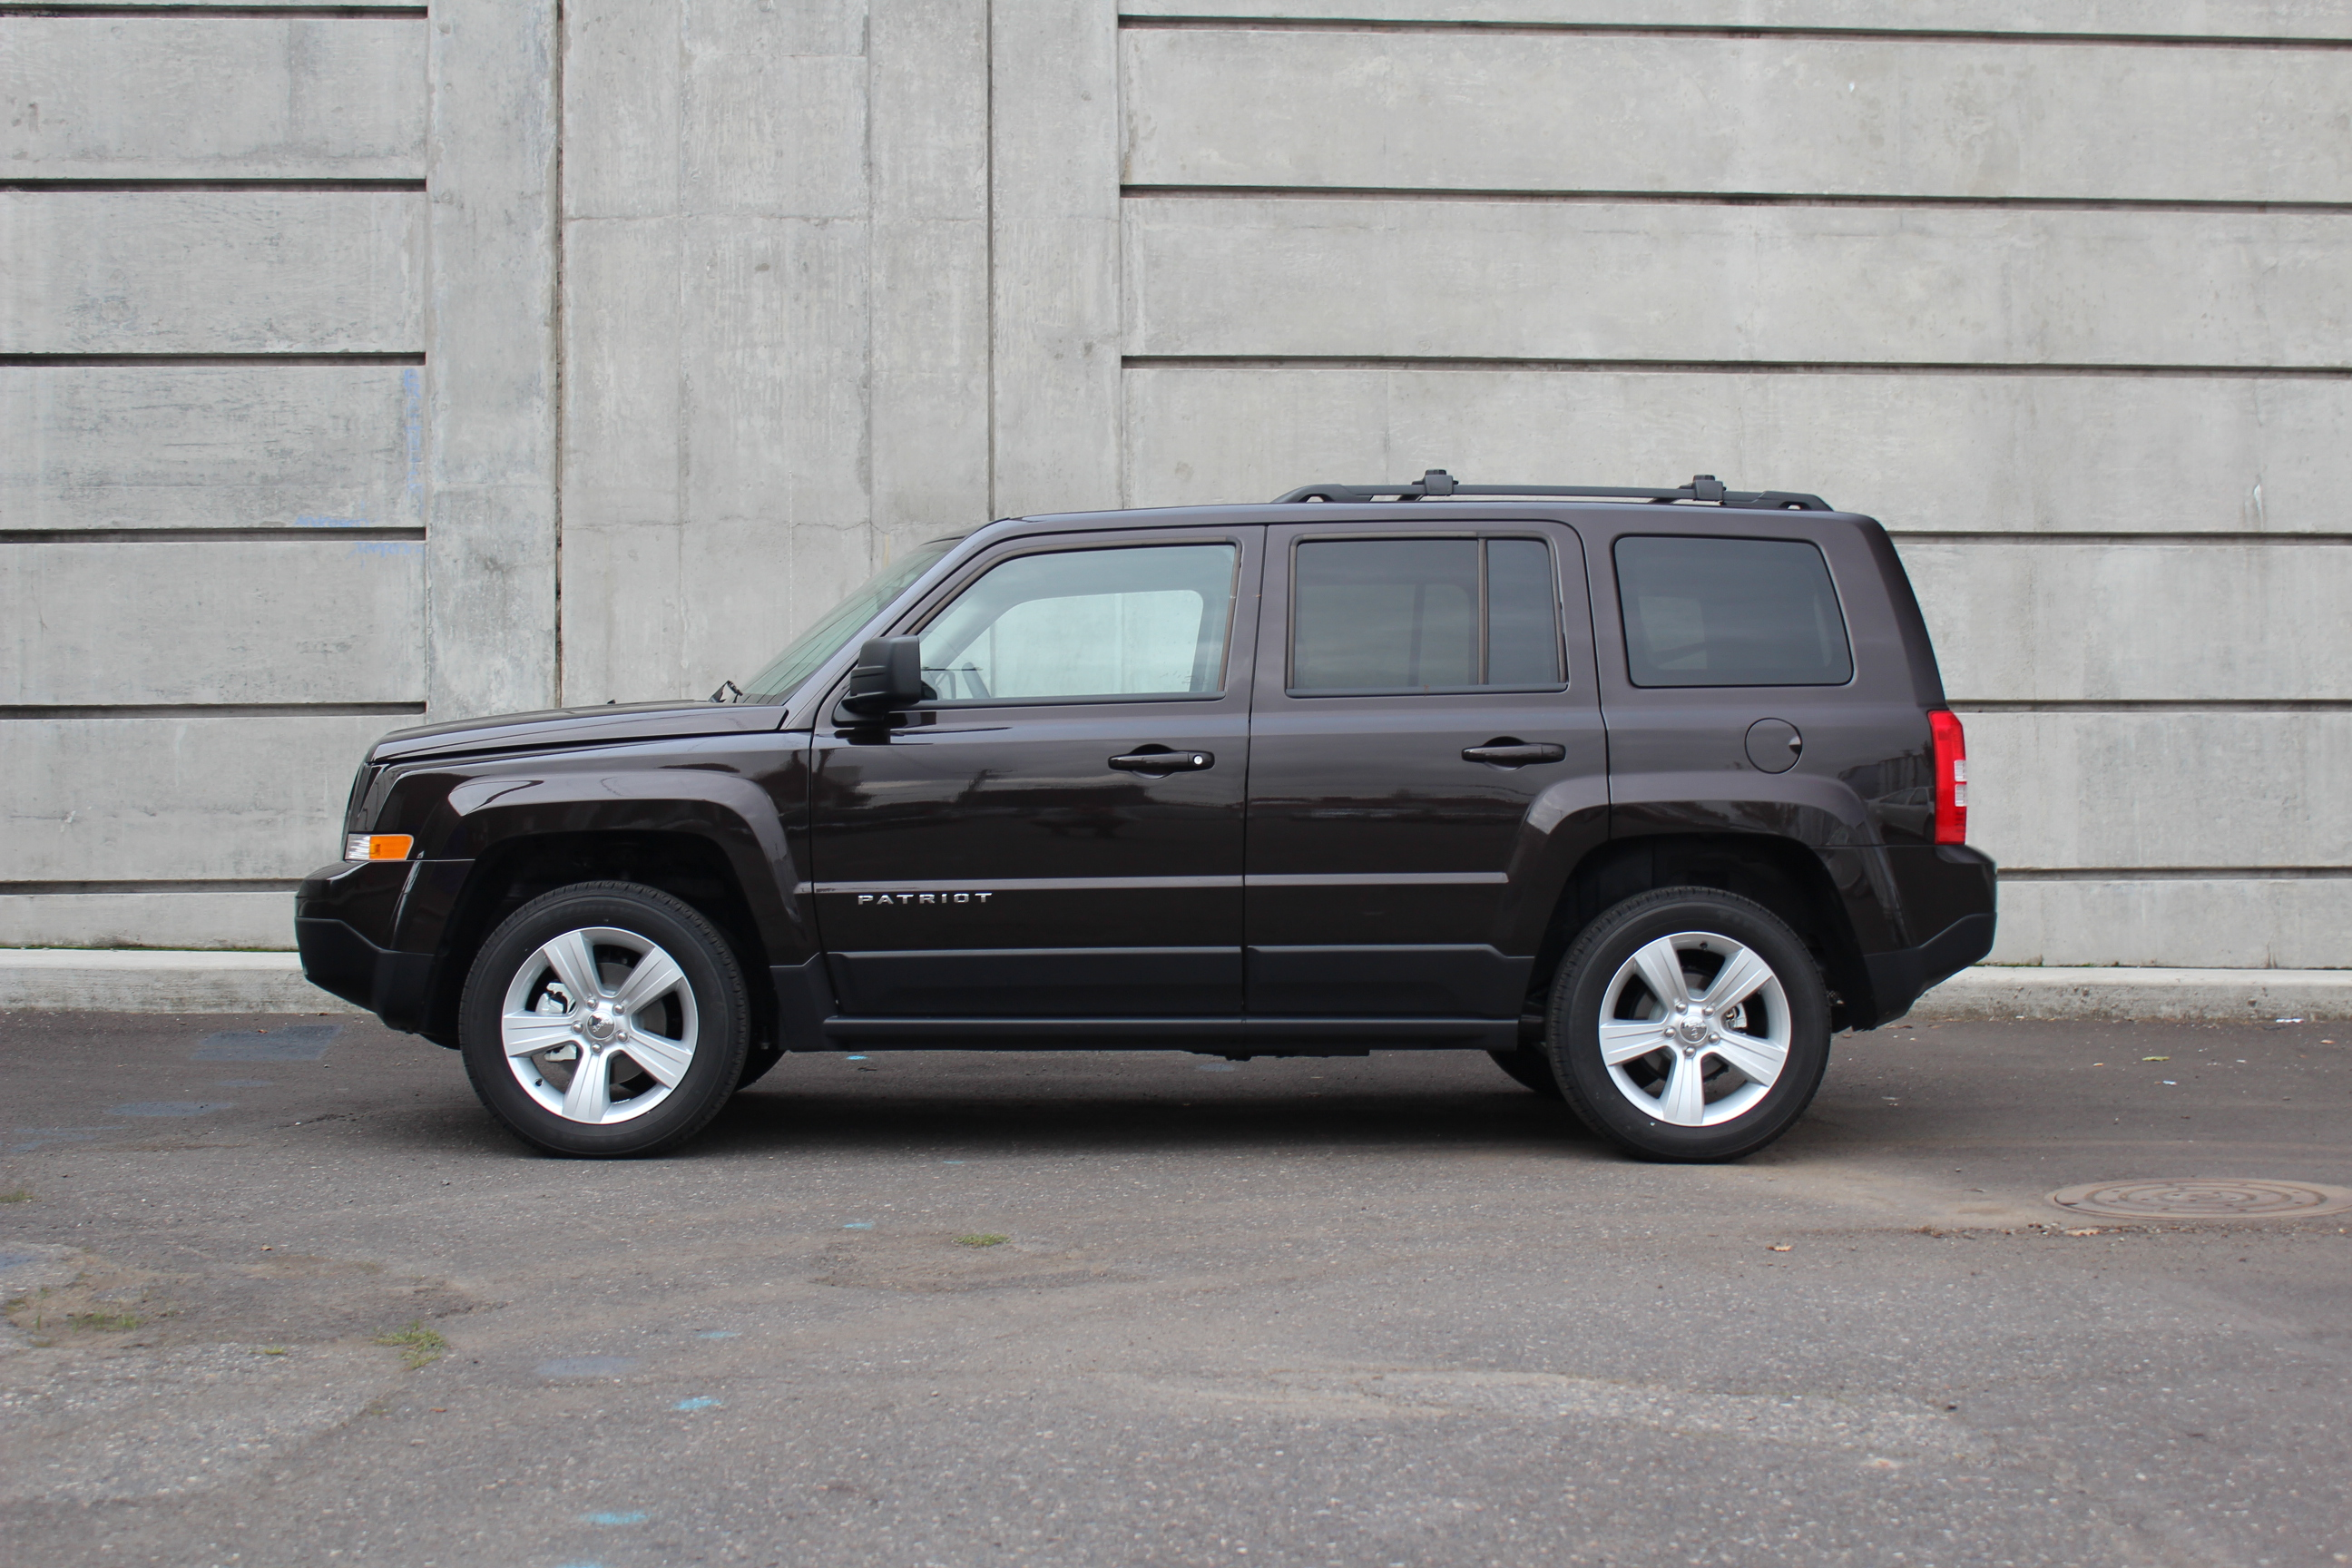 2014 Jeep Patriot Review, Ratings, Specs, Prices, And. Hotels Lafayette Indiana Near Purdue University. Fastest Way To Get Rid Of Back Acne. Manhattan Mortgage Broker Xlerator Hand Dryer. Lost My Direct Express Card Tree Service Md. Home Team Pest Defense Las Vegas. Online Doctorate Psychology Cox For Business. Allentown Personal Injury Attorney. Liposuction Ft Lauderdale Etf Trading Systems